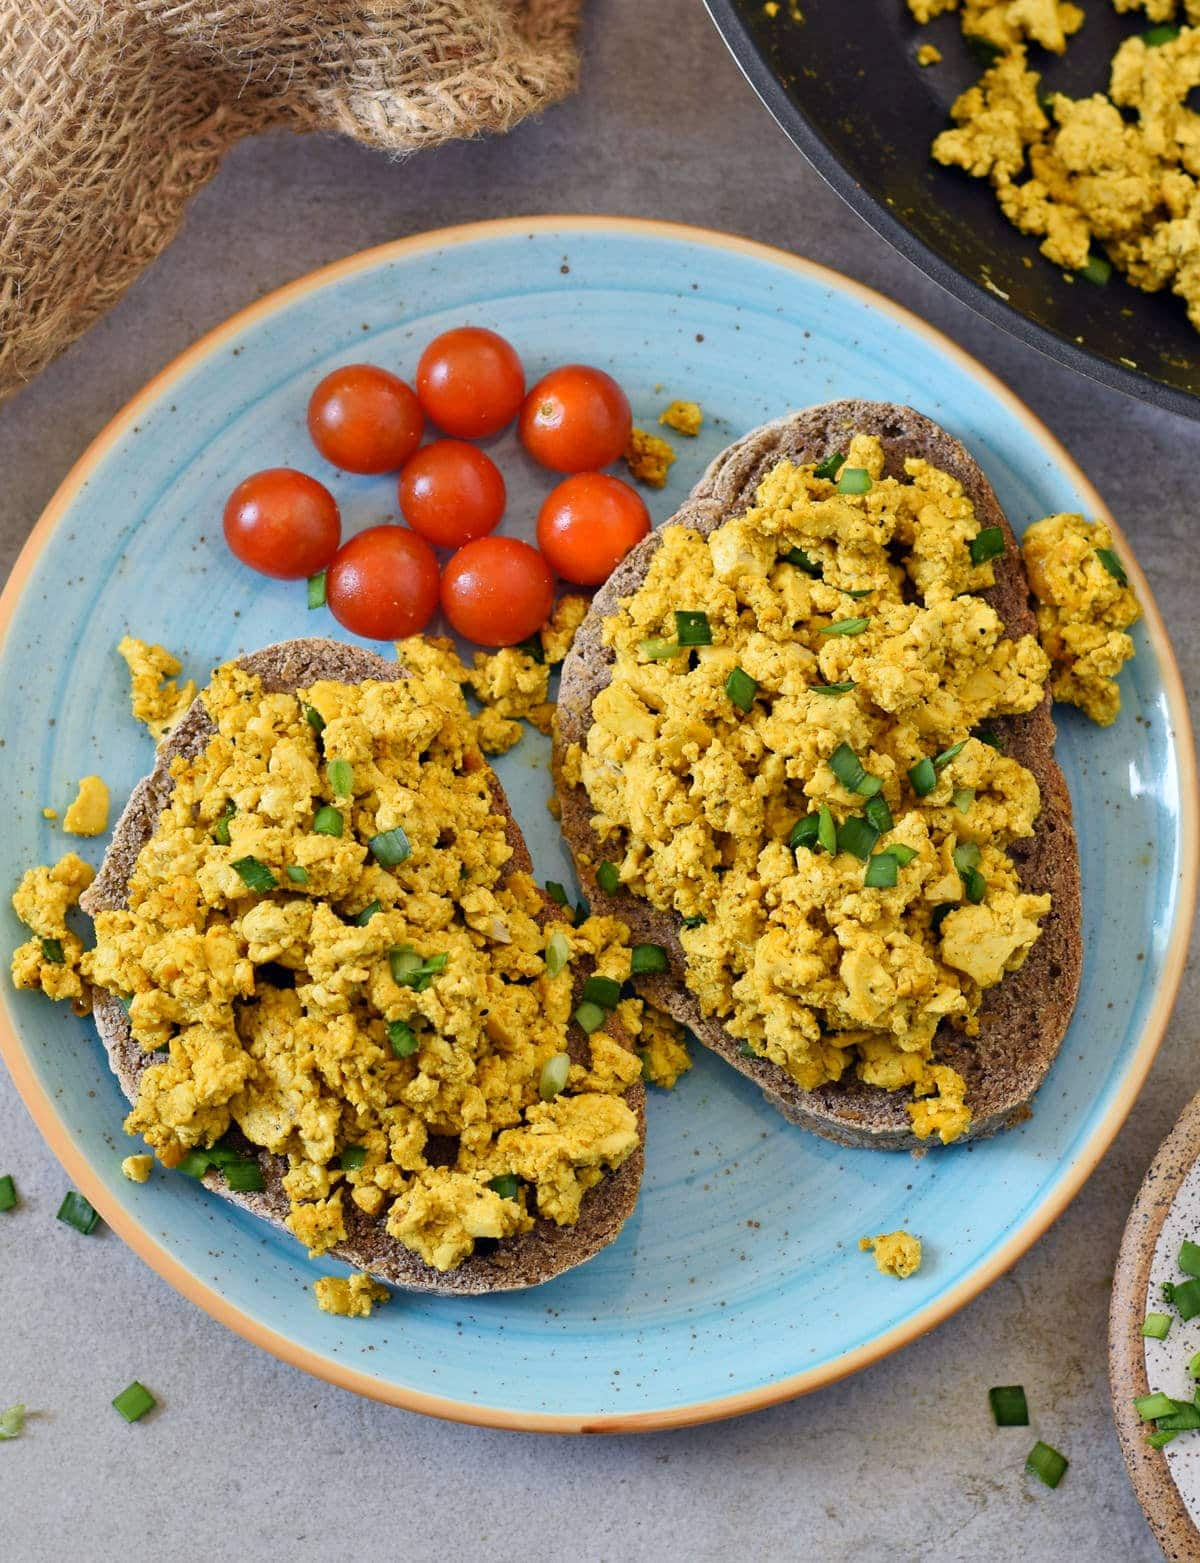 tofu scramble on gluten-free bread with cherry tomatoes on the side